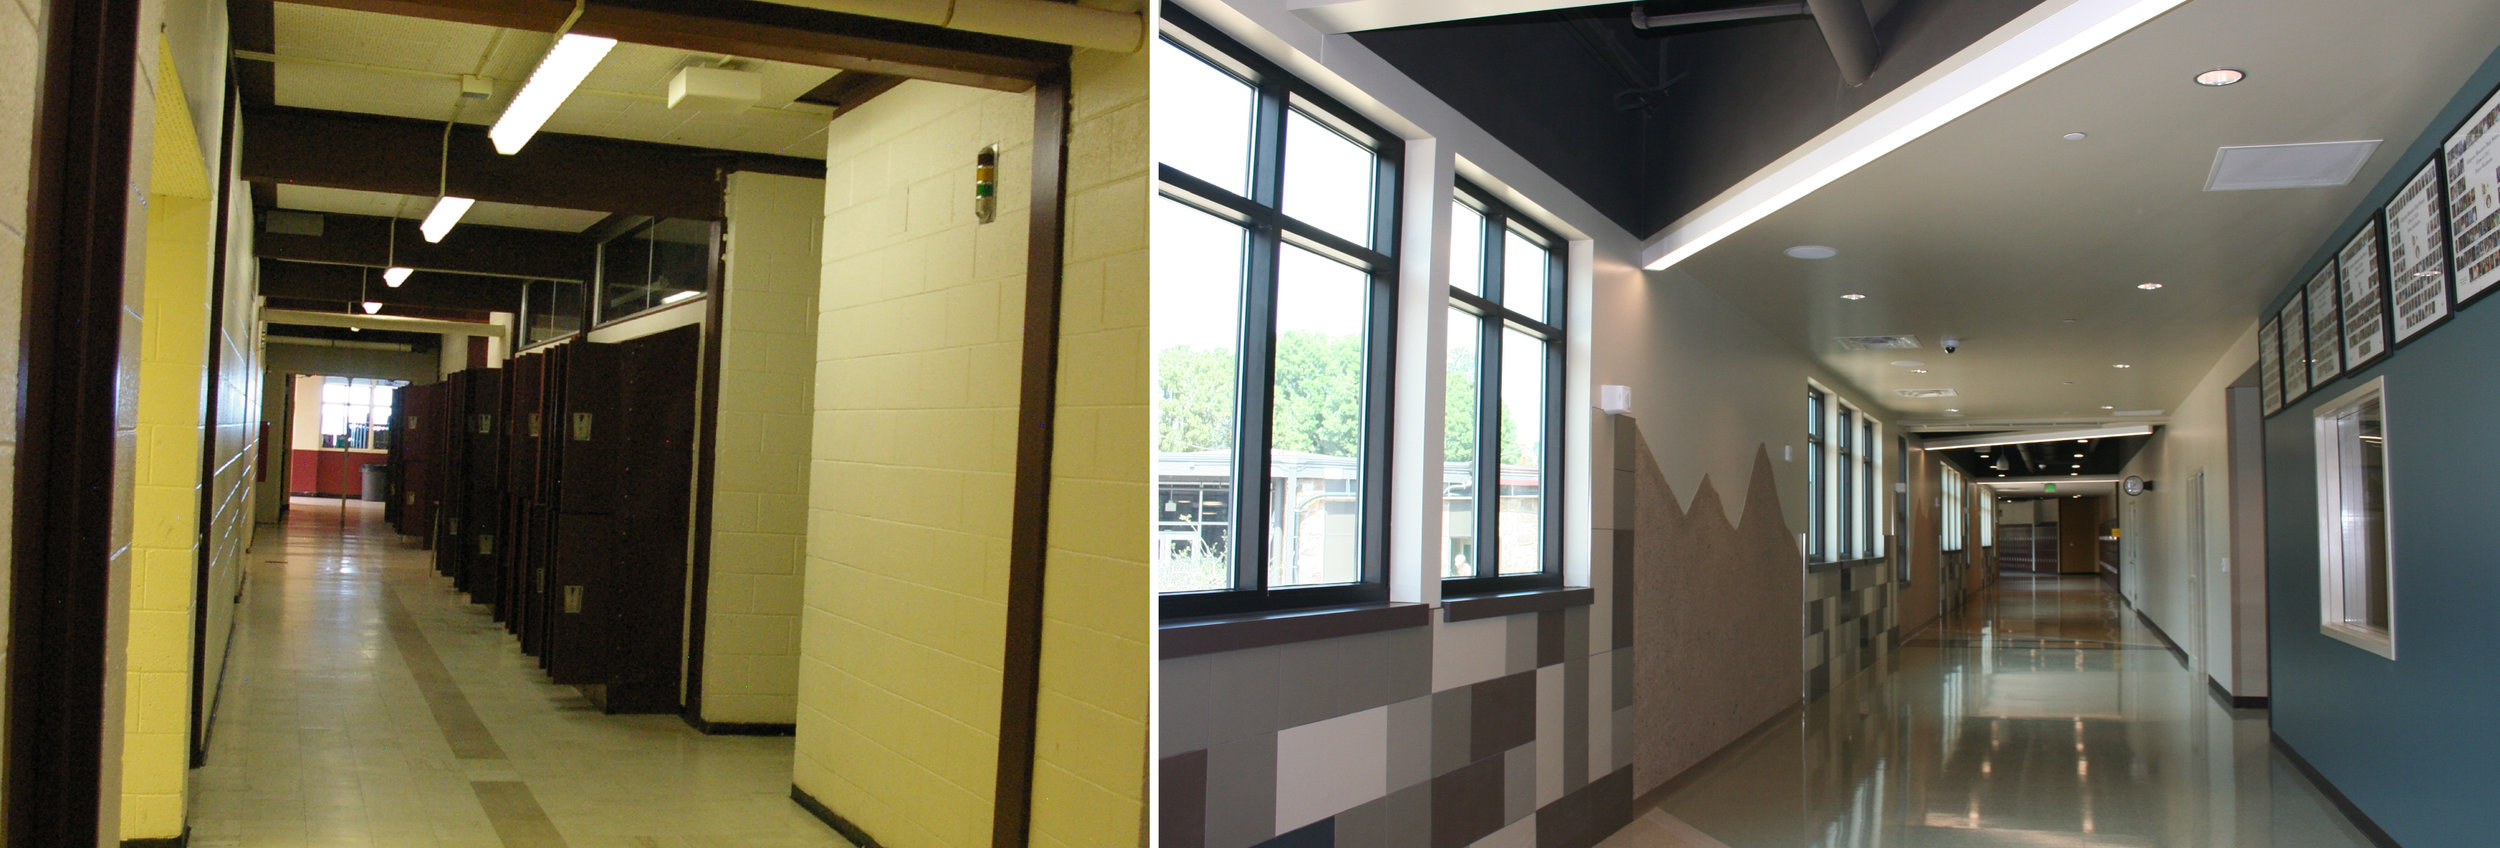 The difference in the corridors is drastic. No more fluorescent lights and narrow passageways! And unlike the original facility, all corridors will now have access to natural light and outdoor views. (After Image updated on 8-19-16)